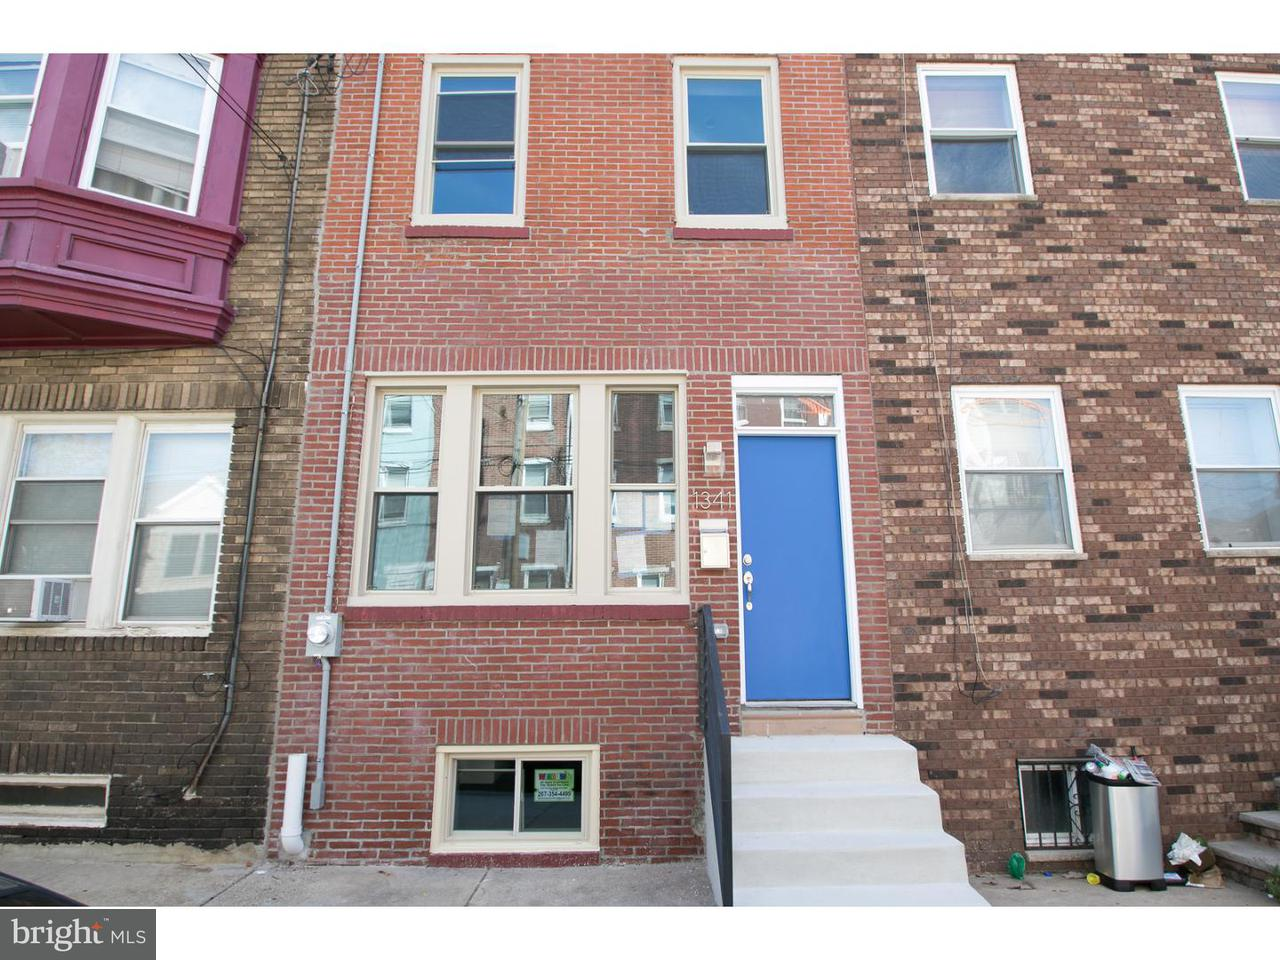 1341 S 4TH Philadelphia, PA 19147